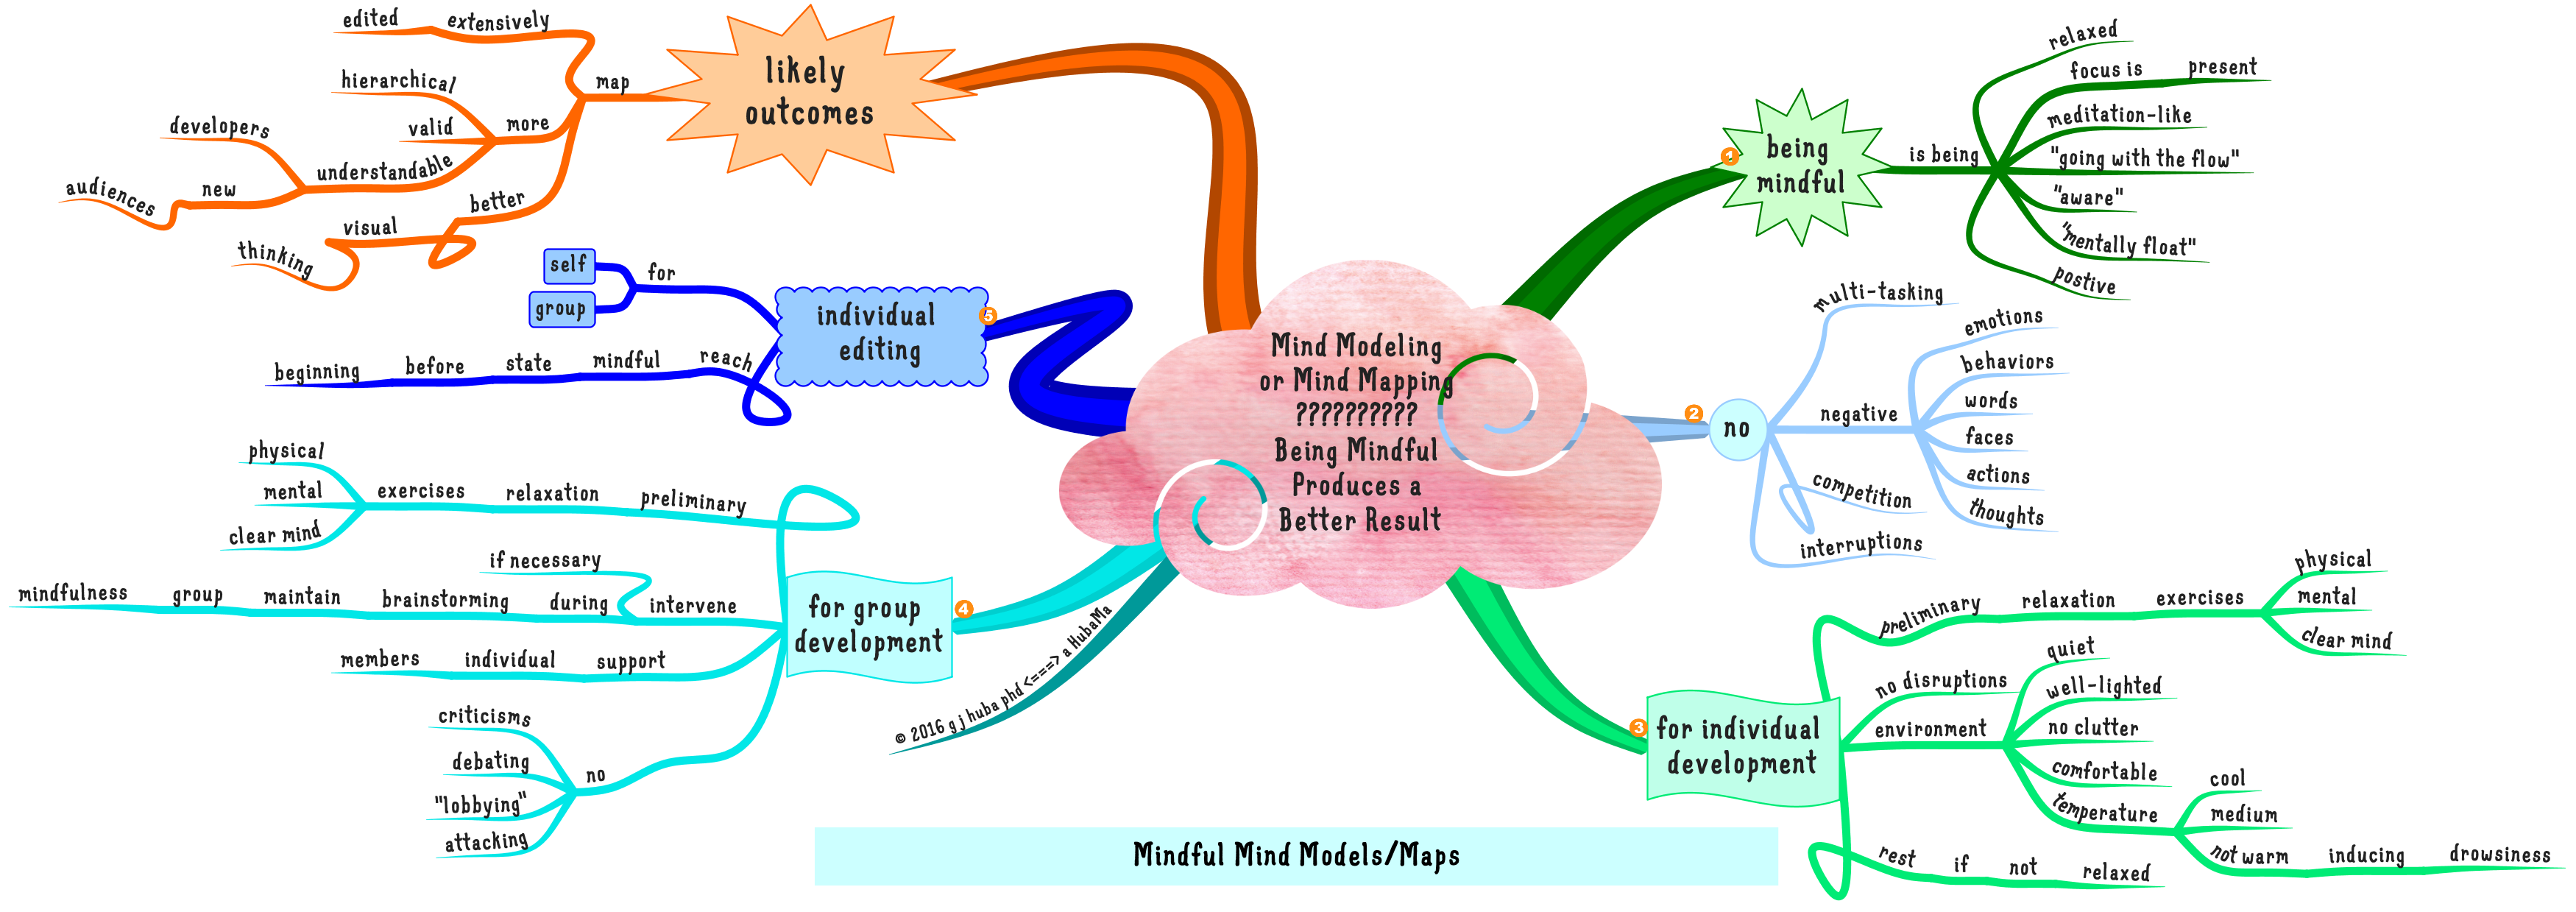 mind-modeling-or-mind-mapping-being-mindful-produces-a-better-result